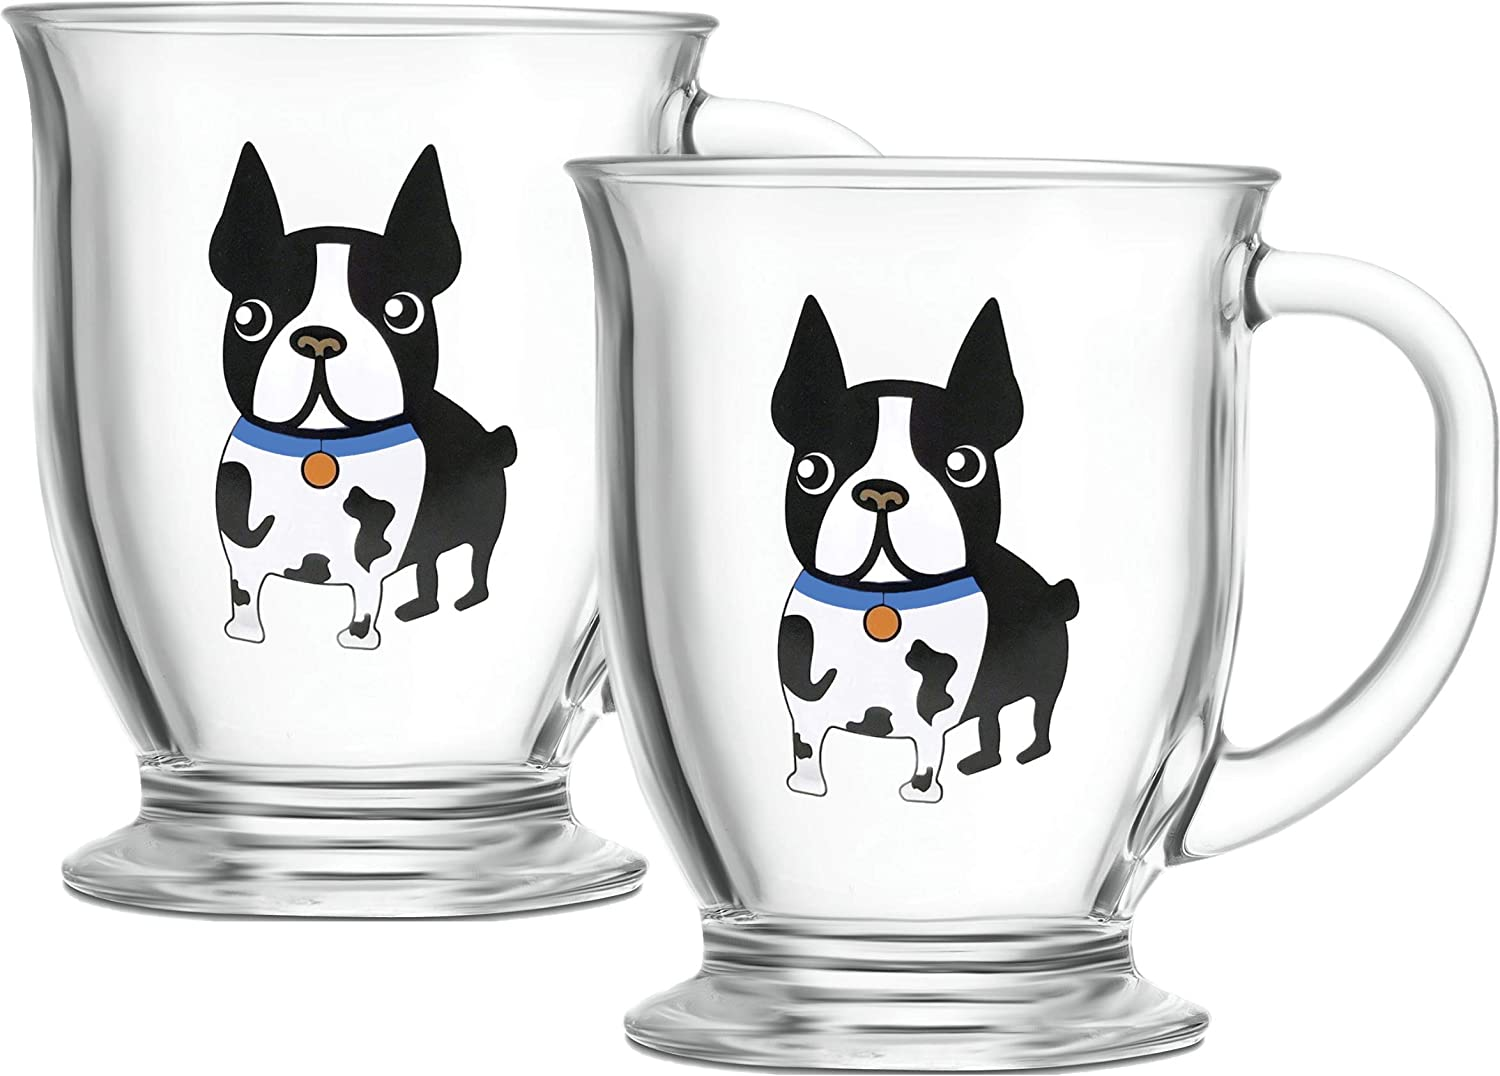 Circleware Boston Terrier Coffee Mug with Handle, Set of 2 Glasses Entertainment Home & Kitchen Beverage Dining Glassware for Water, Beer, Wine, Whiskey, Juice and Drinks, 16 oz, Blue